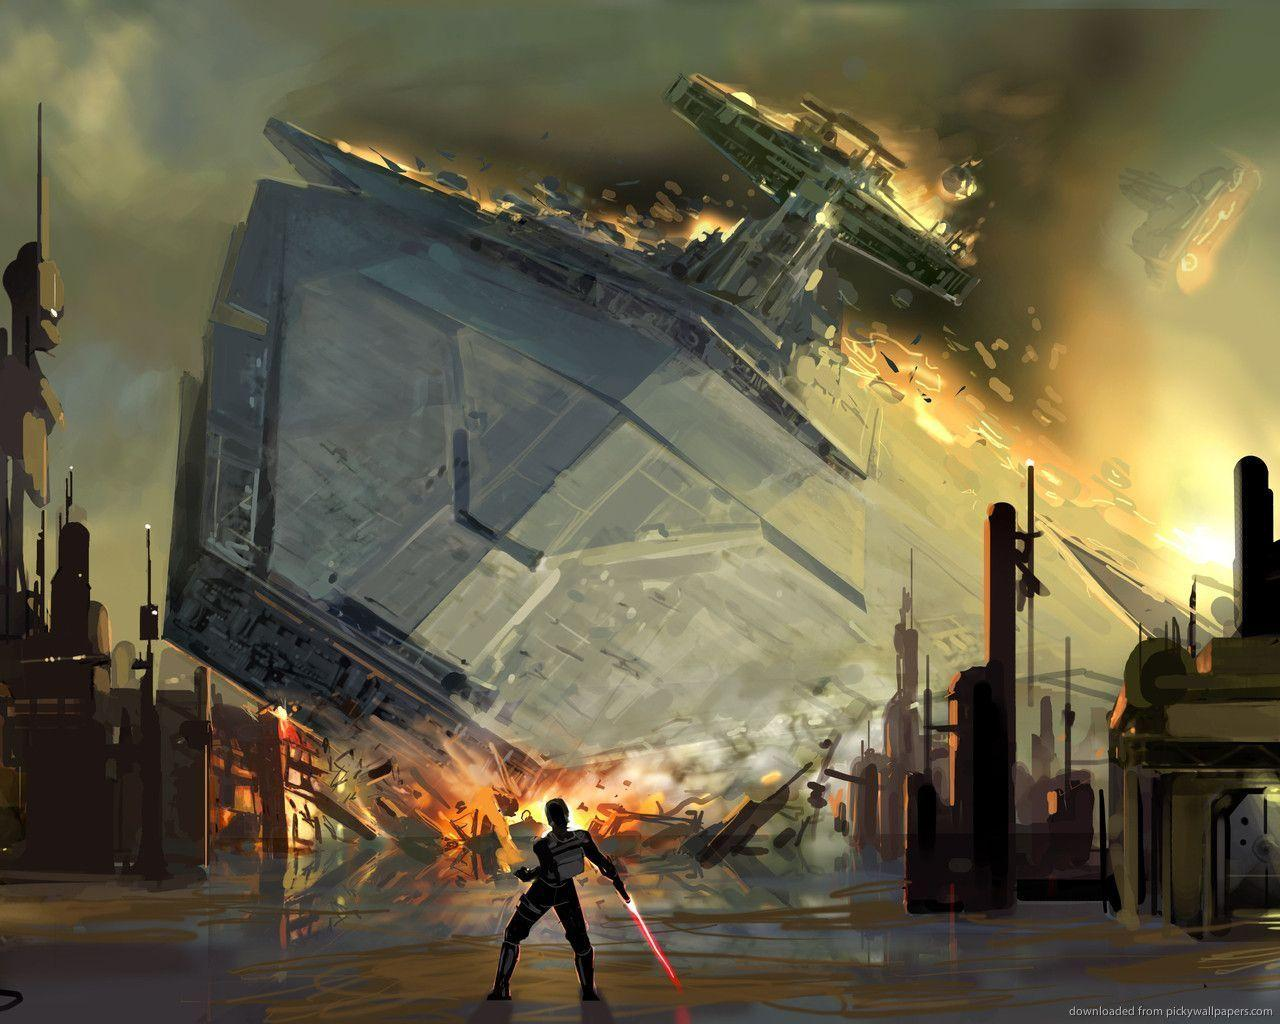 Download 1280x1024 SWTFU Star Destroyer Force Pull Wallpapers